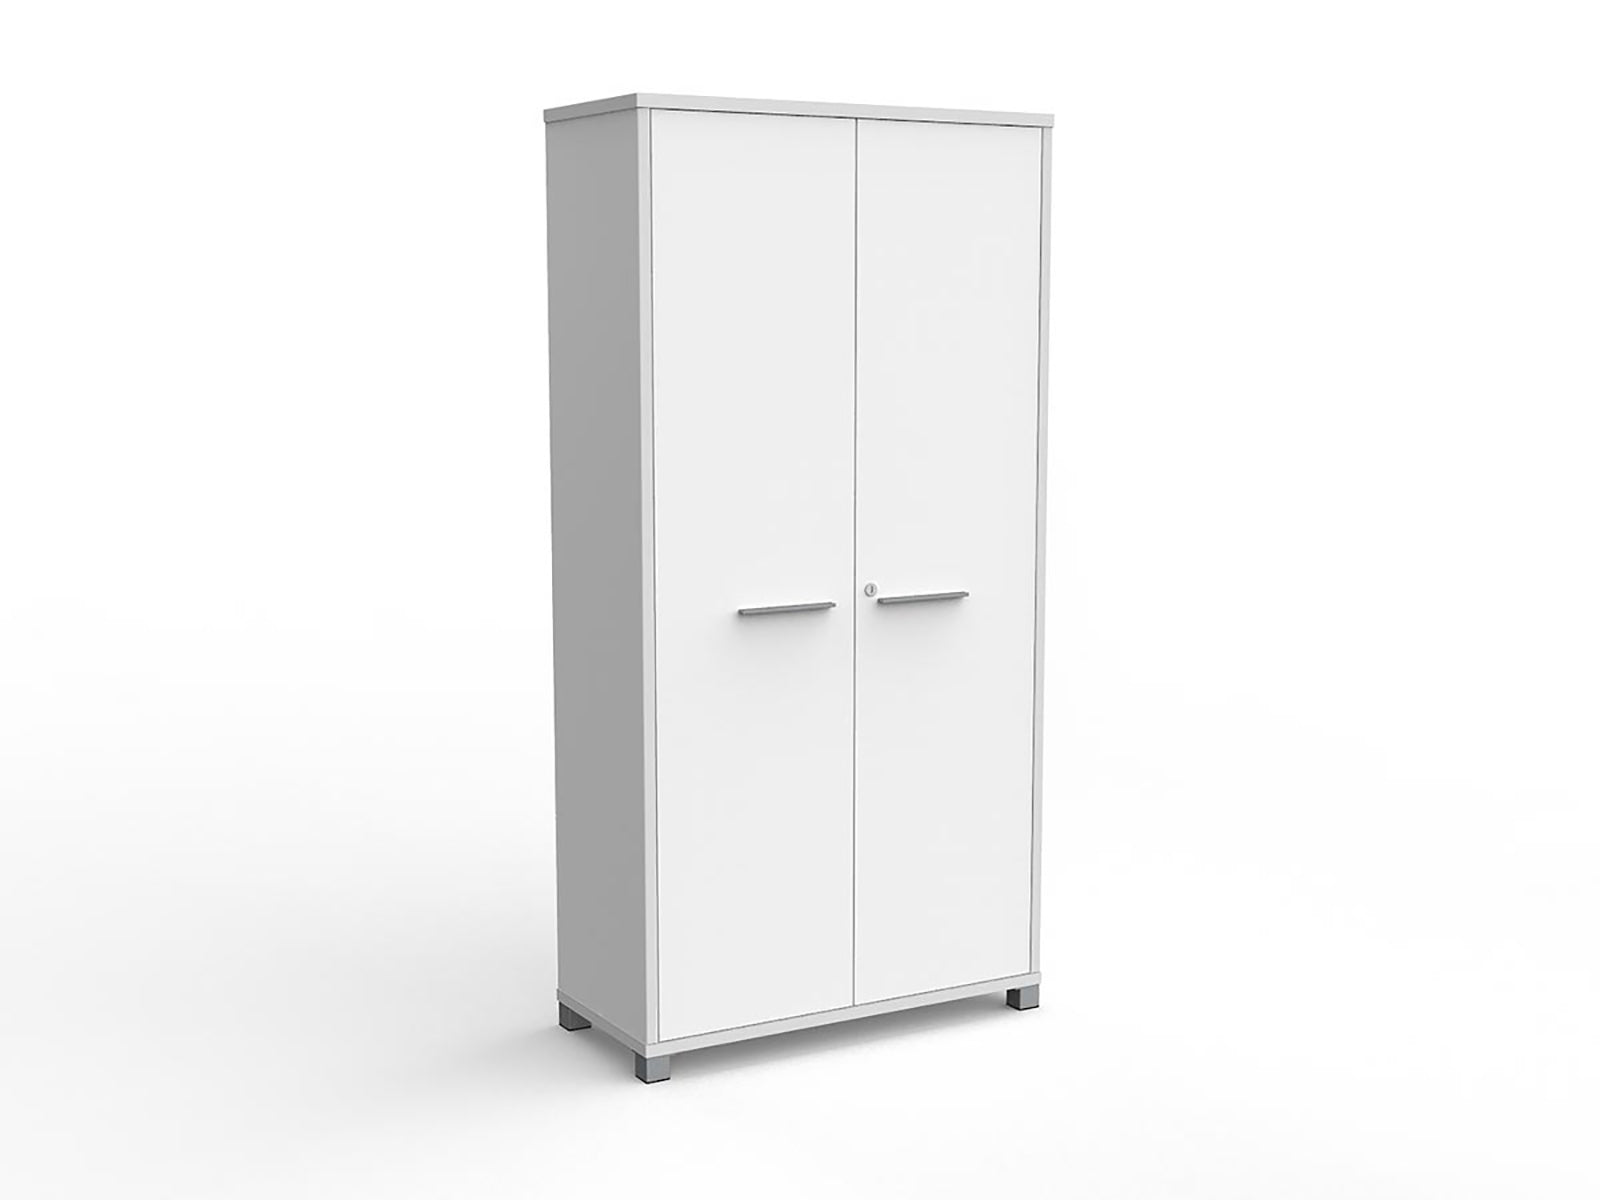 Cubit 1.8m Cupboard - Workspace Furniture Home and Office Cupboards and Shelves